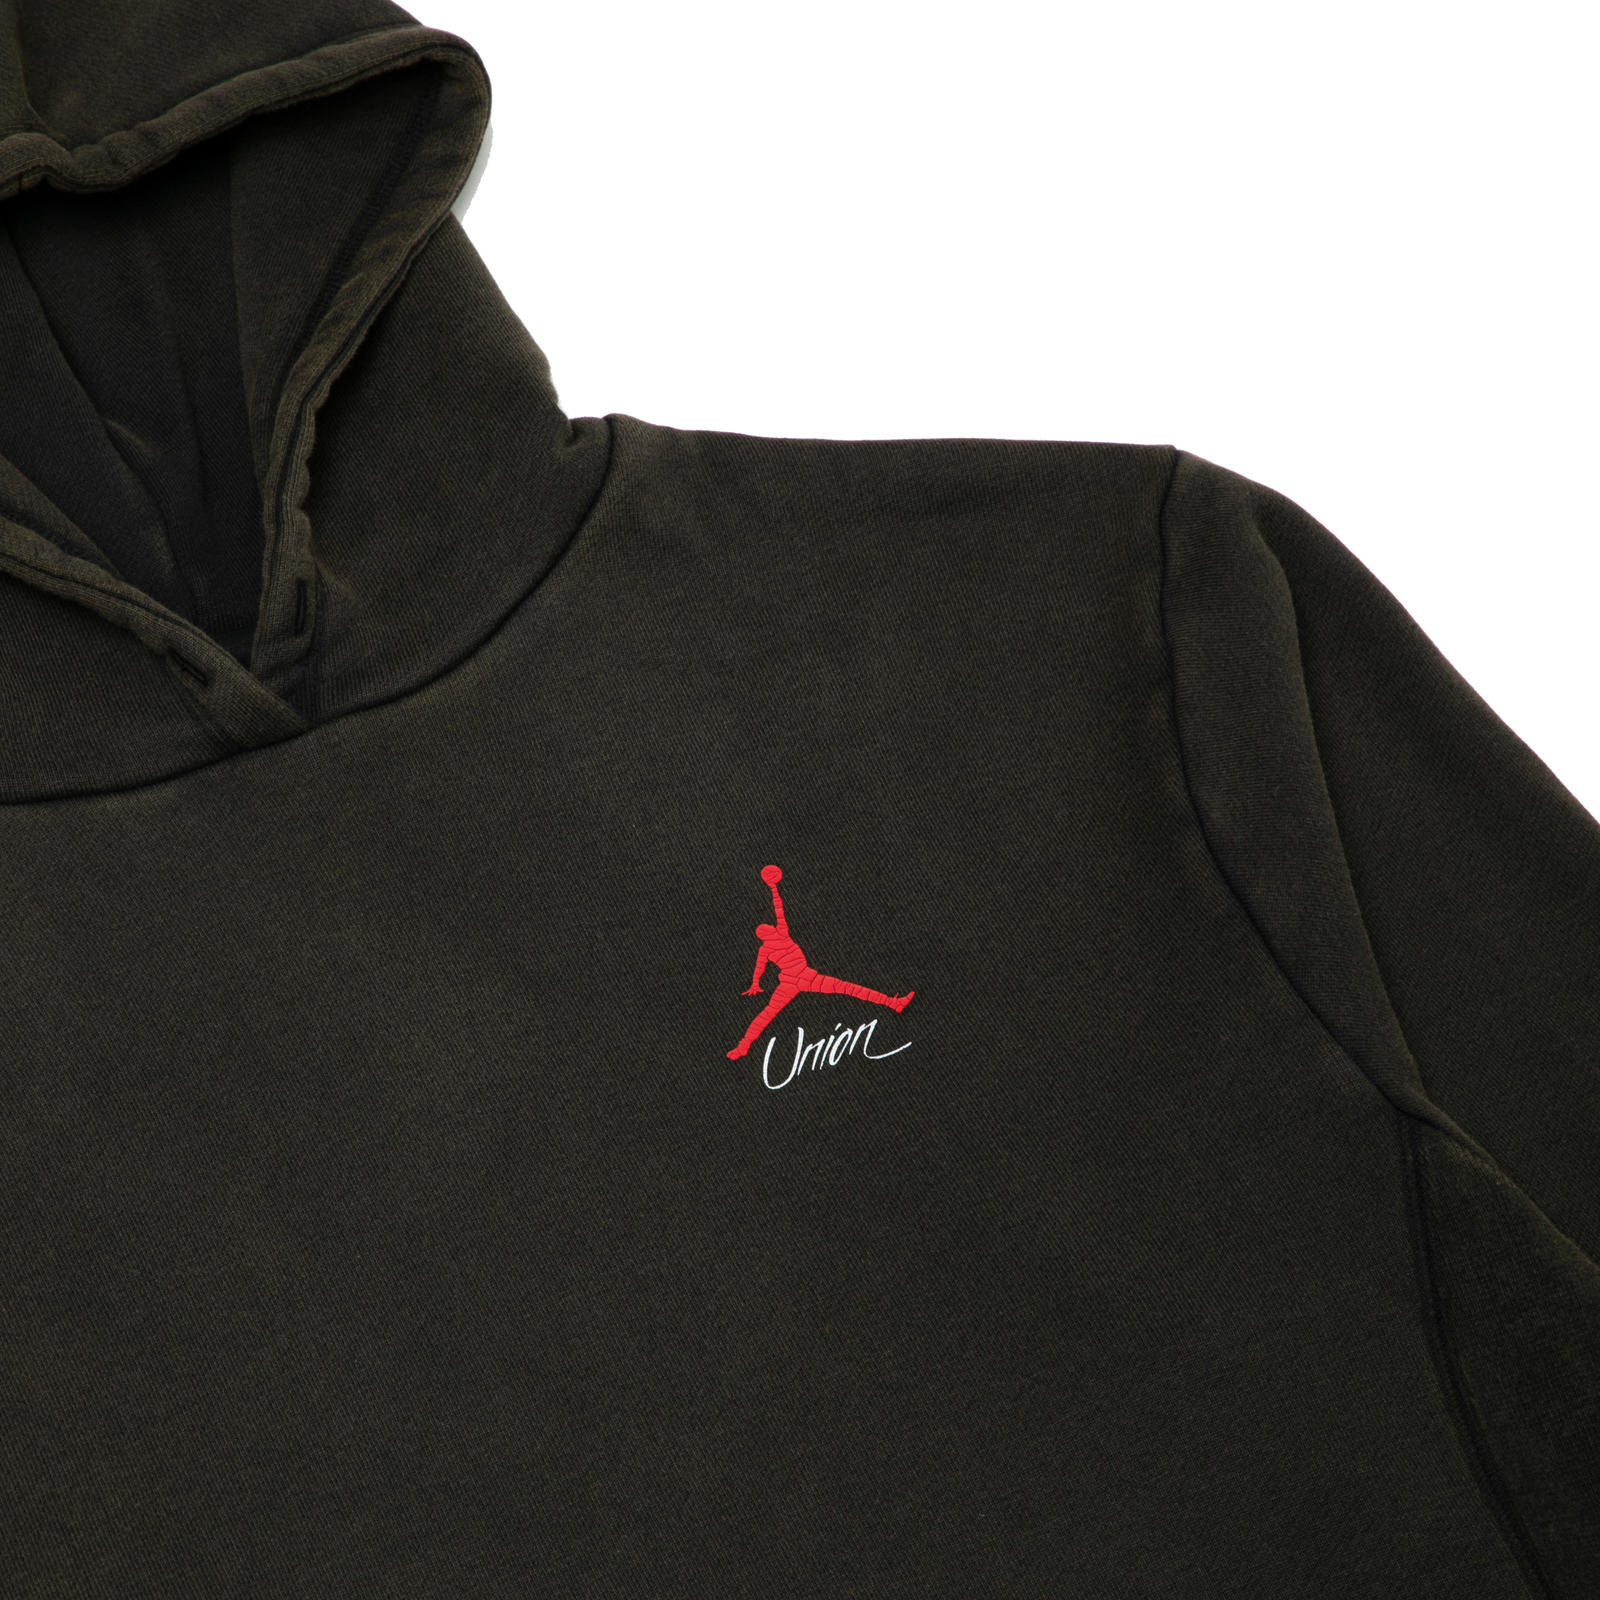 Union x Air Jordan Capsule Celebrates an Era of Jordan's Impact on Streetwear 52